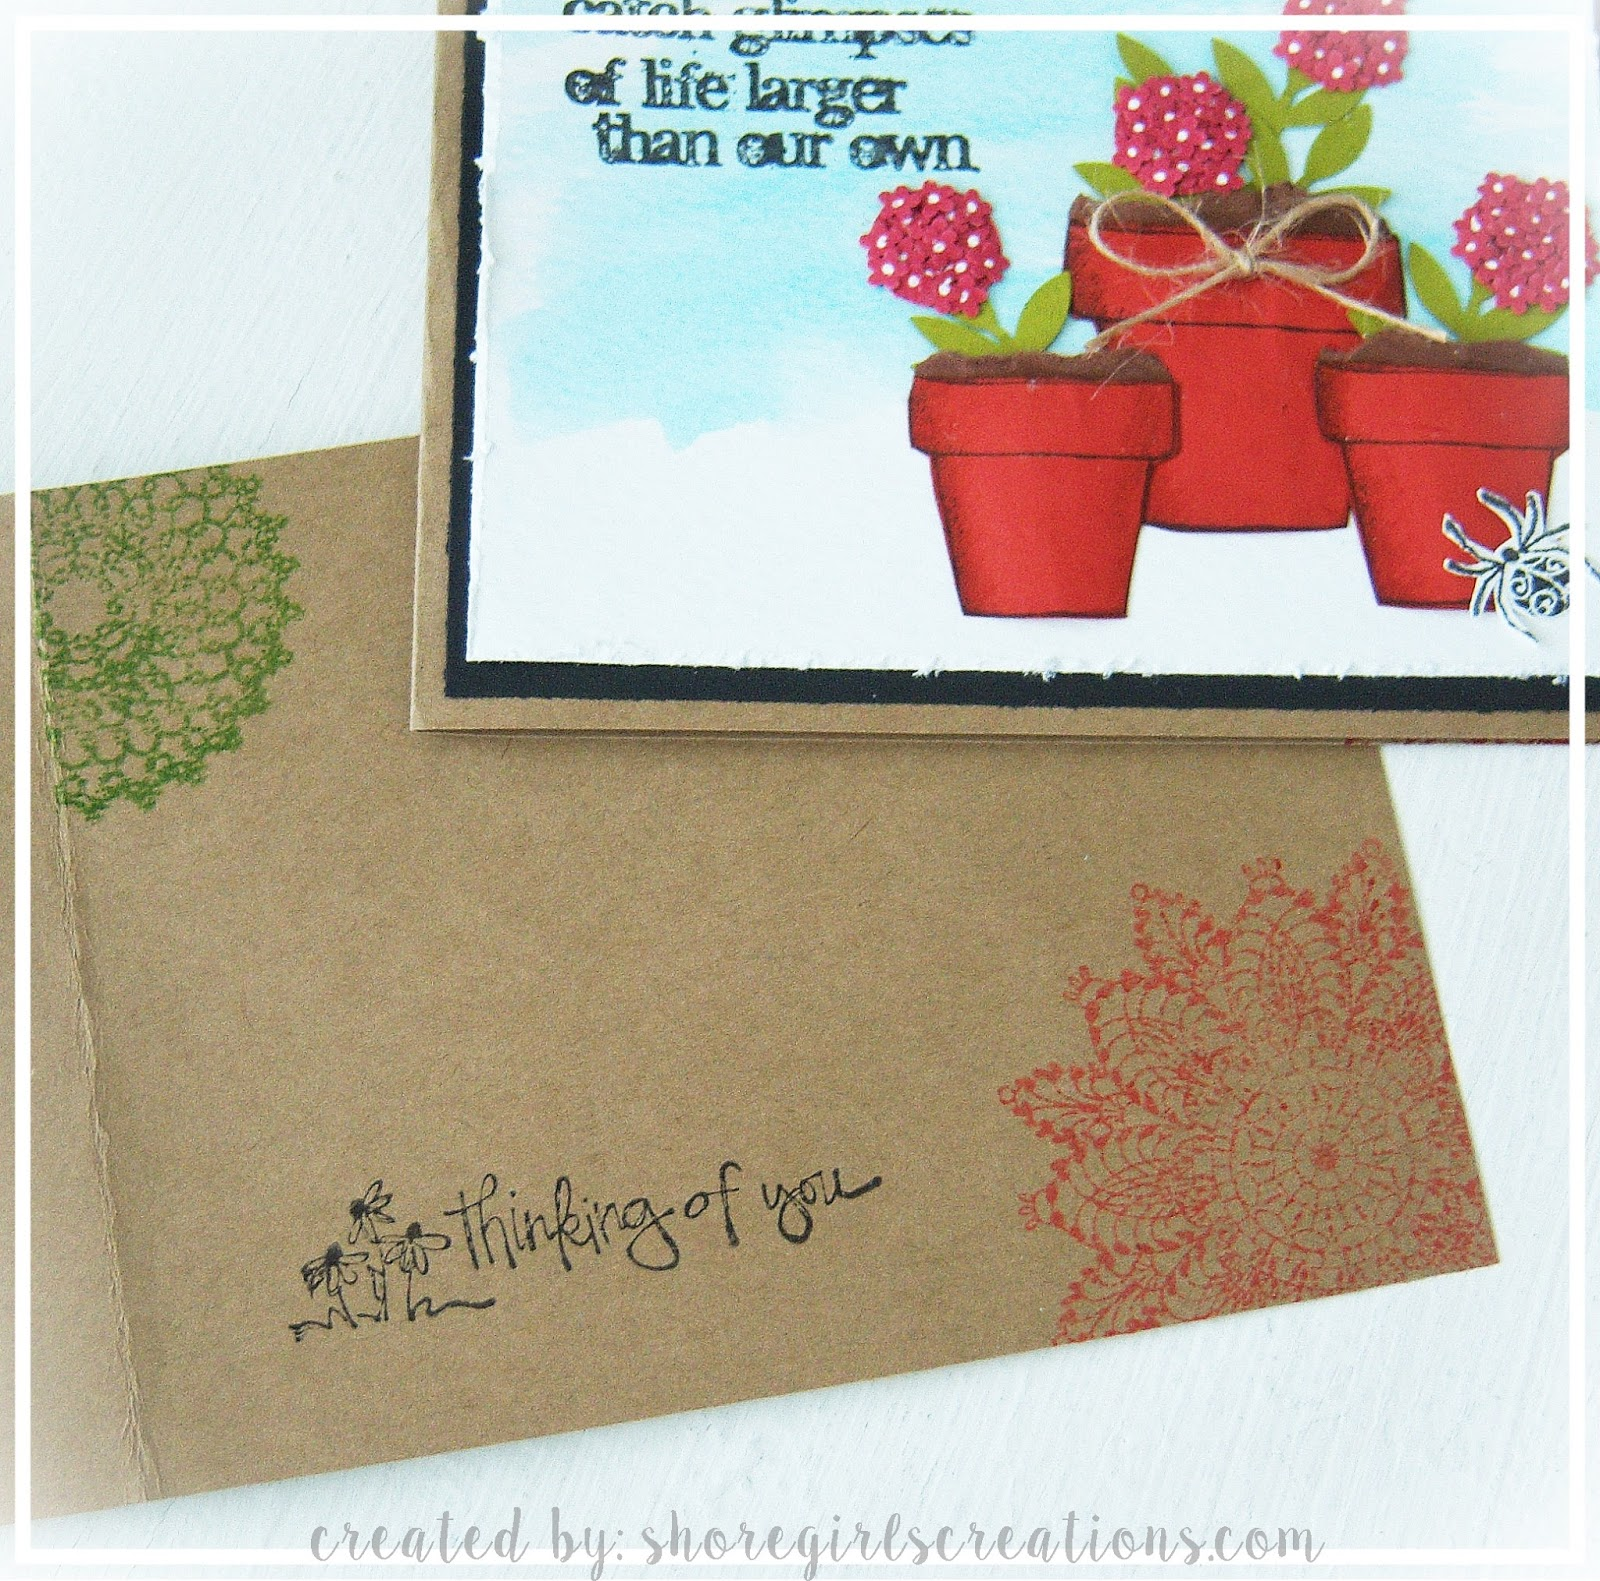 Hinge Vintage Photo Fired Brick Abandoned Coral Mowed Lawn Distress Ink Tim Holtz Burlap Twine Watercolor Paper Frond Punch Martha Stewart